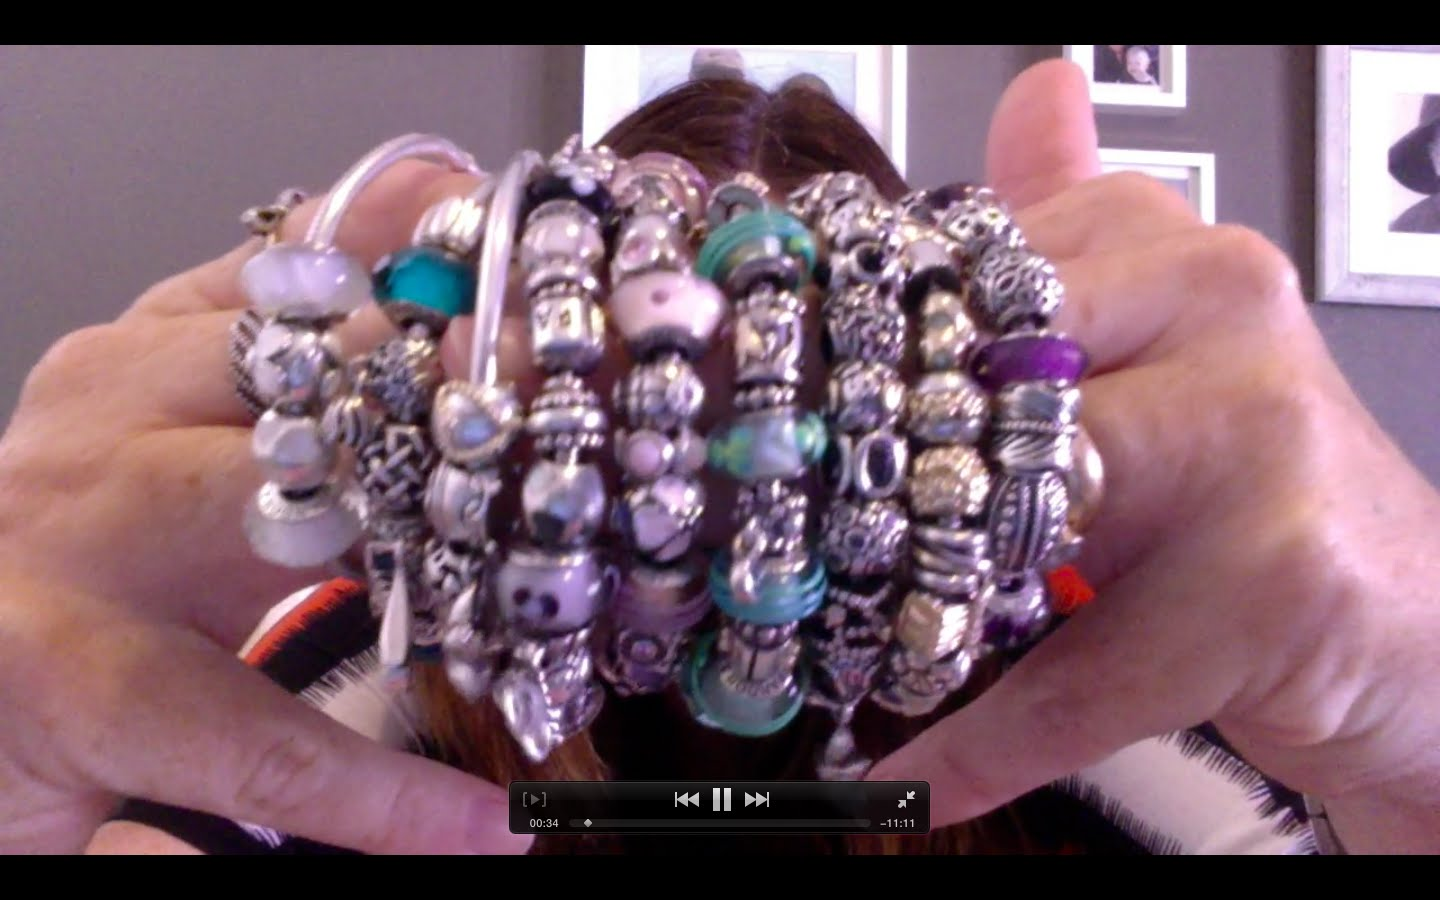 To acquire Bracelets of collection picture trends